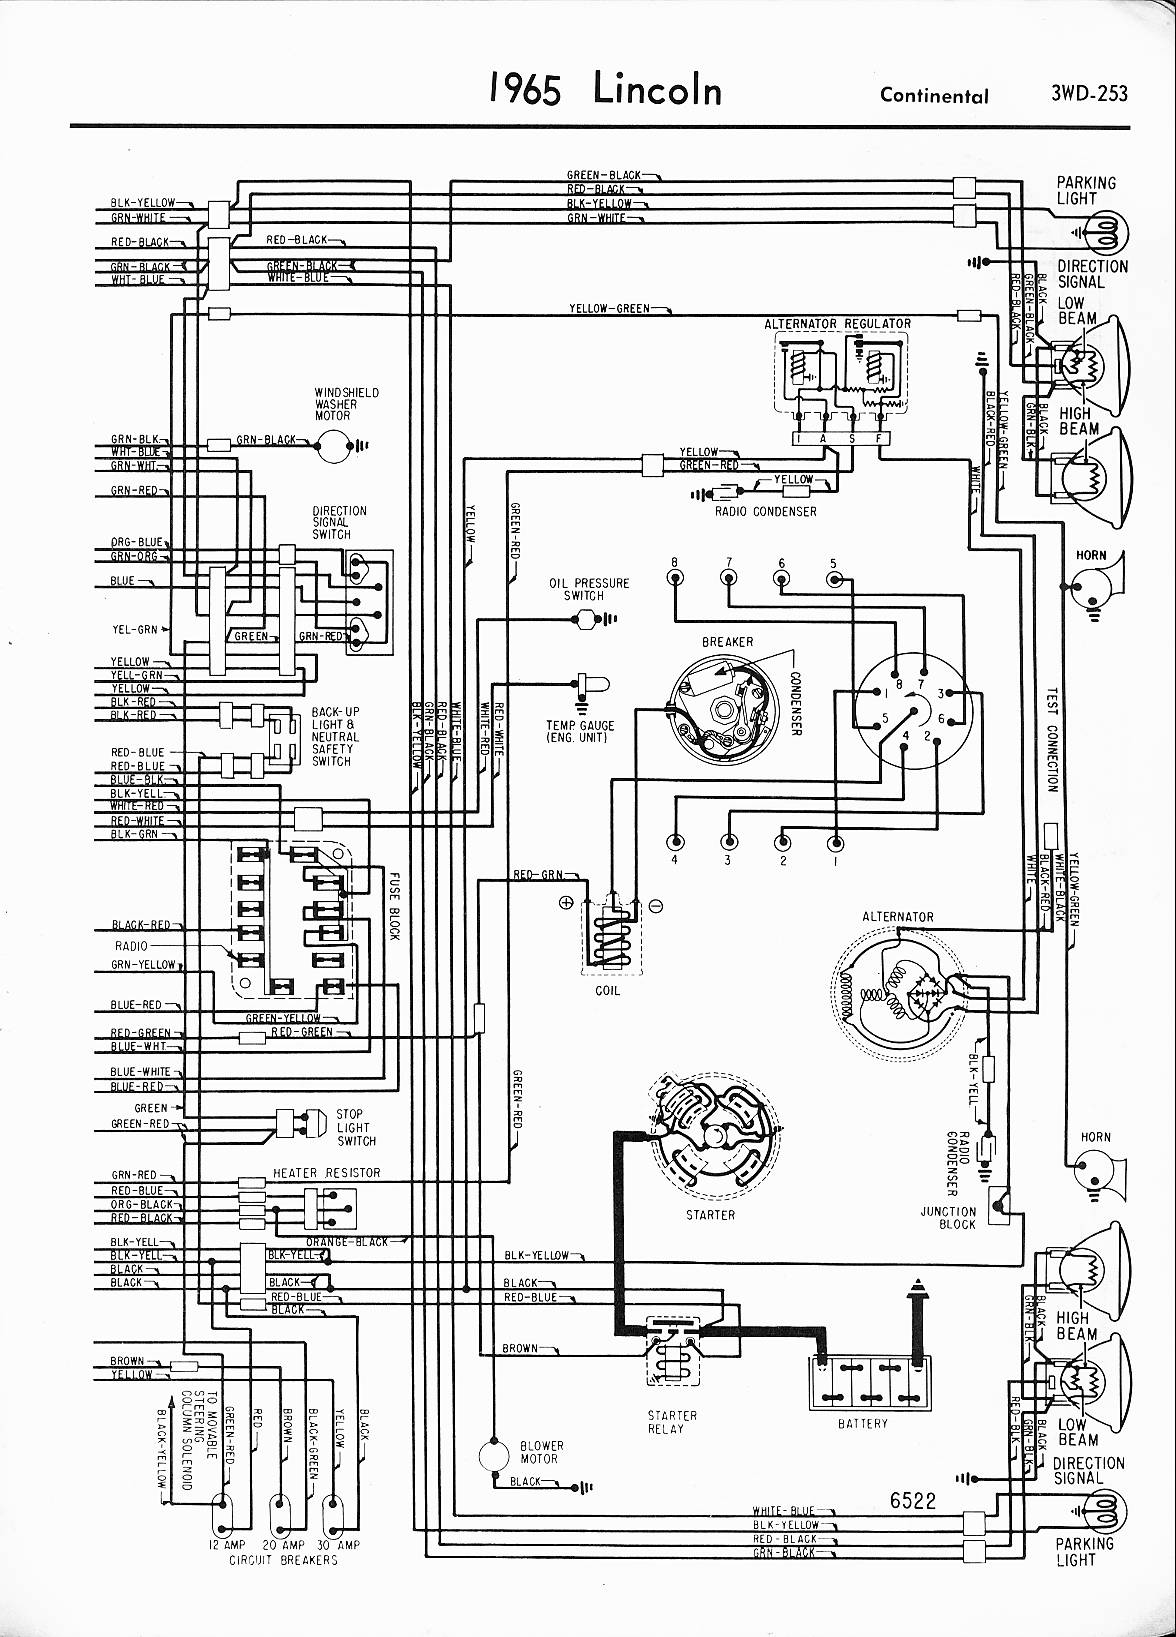 99 Lincoln Navigator Wiring Diagram - wiring diagram solid-where -  solid-where.siamocampobasso.it | 99 Lincoln Navigator Wiring Diagram |  | siamocampobasso.it